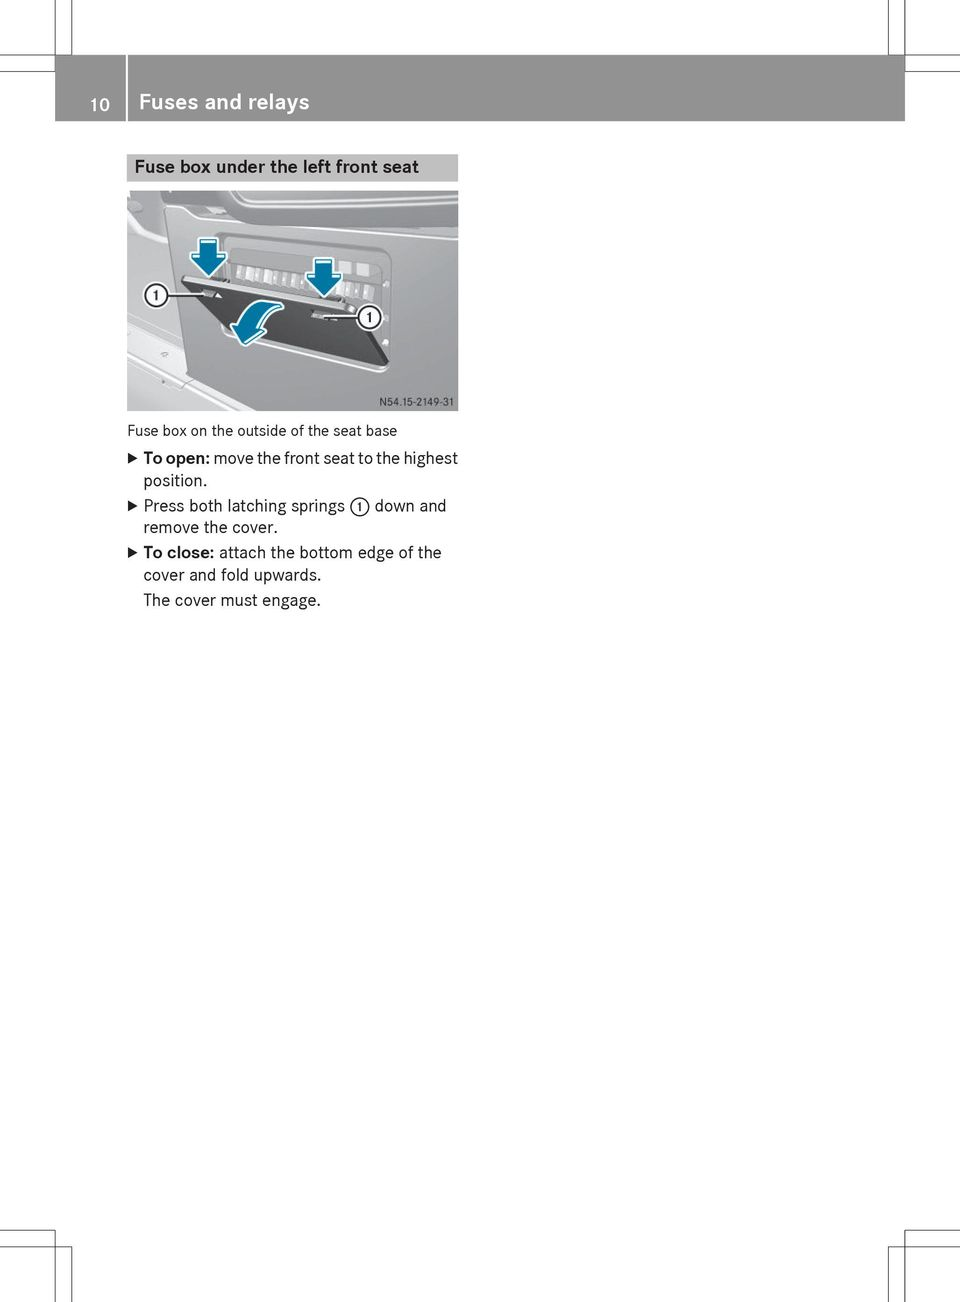 Sprinter Y Fuse Allocation Supplement Order No Part Edition Pdf Box For 2008 Volvo C30 Position X Press Both Latching Springs Down And Remove The Cover